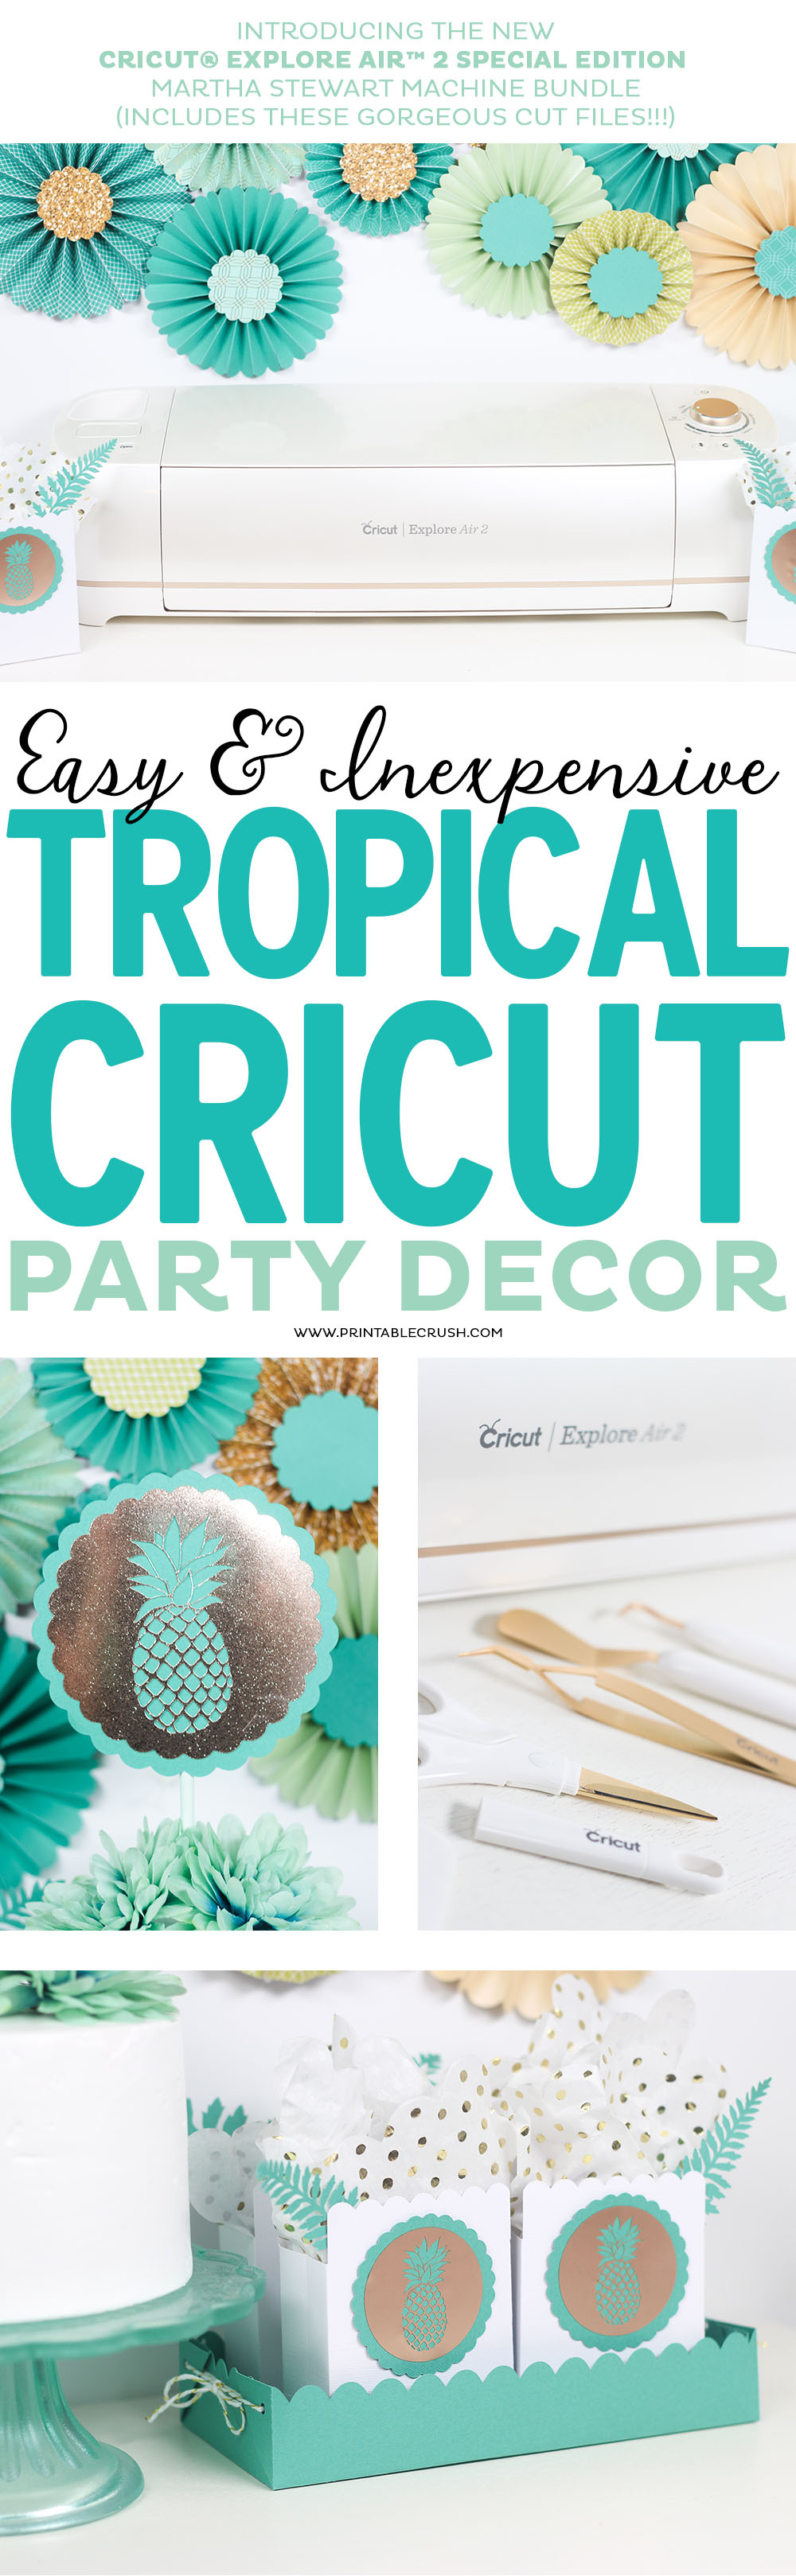 This tropical Cricut party decor is so simple to create with the new graphics included with the Martha Stewart Cricut® Explore Air™ 2 Special Edition! #ad, #CricutMarthaStewart, #MadeWithMichaels #CricutMade #Cricut via @printablecrush